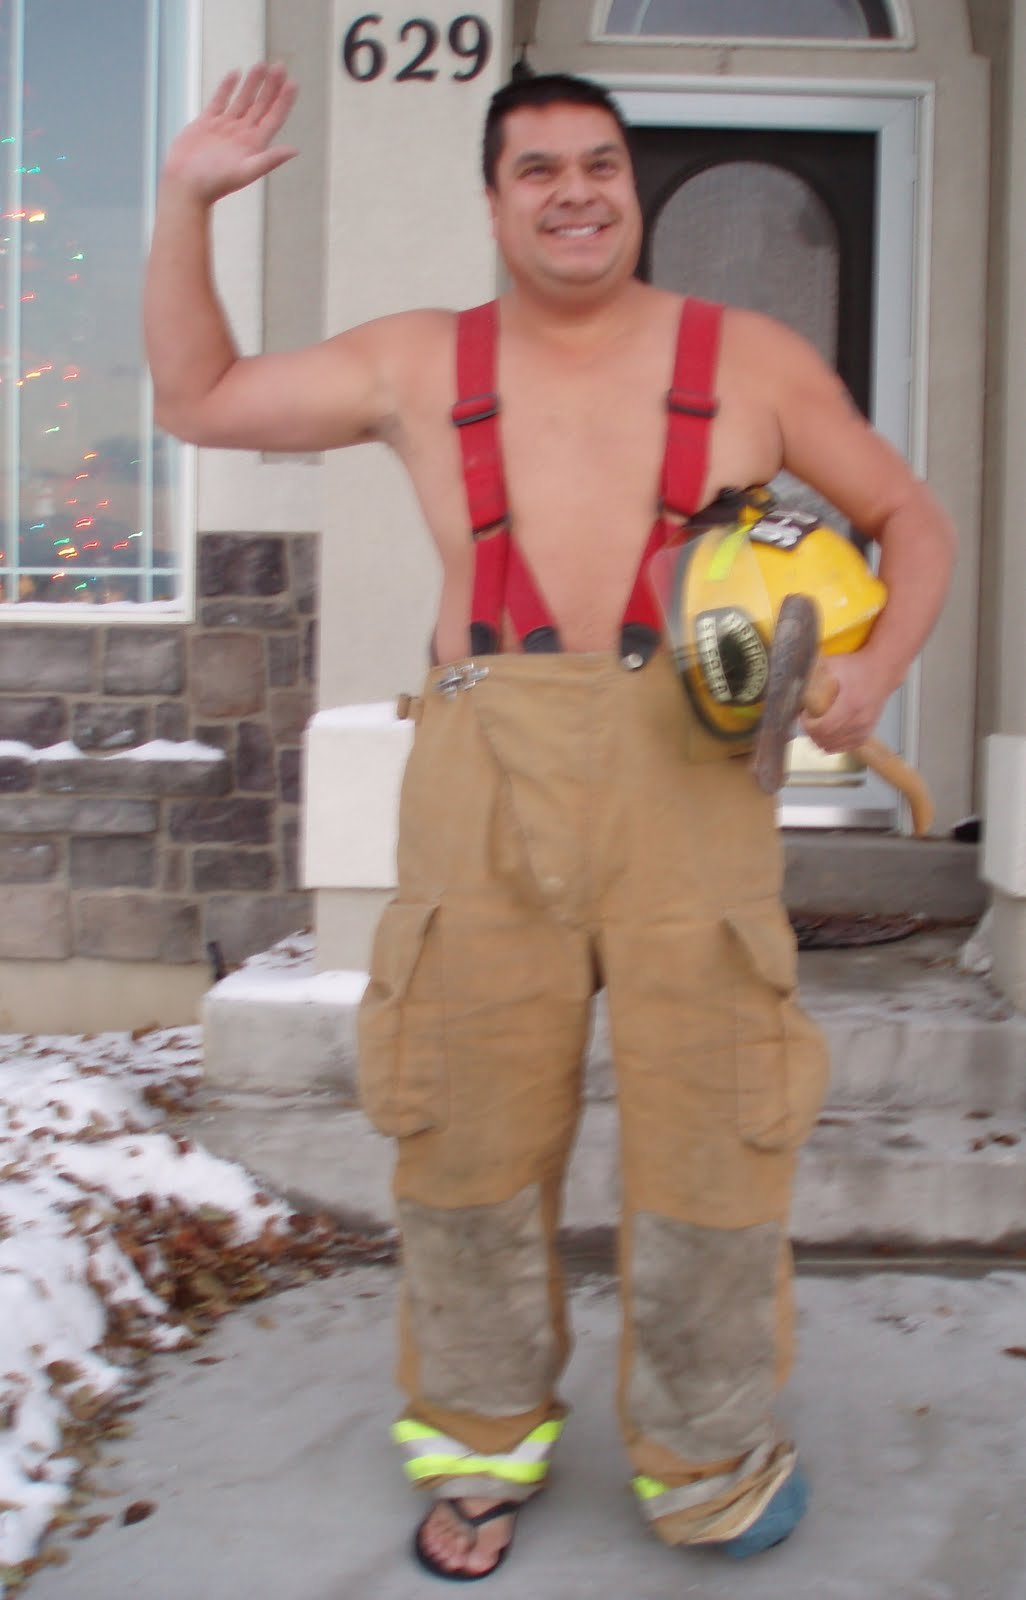 Wave At The Bus: Day 64 - Firefighter Calendar Hunk Hunk Short Timers Calendar